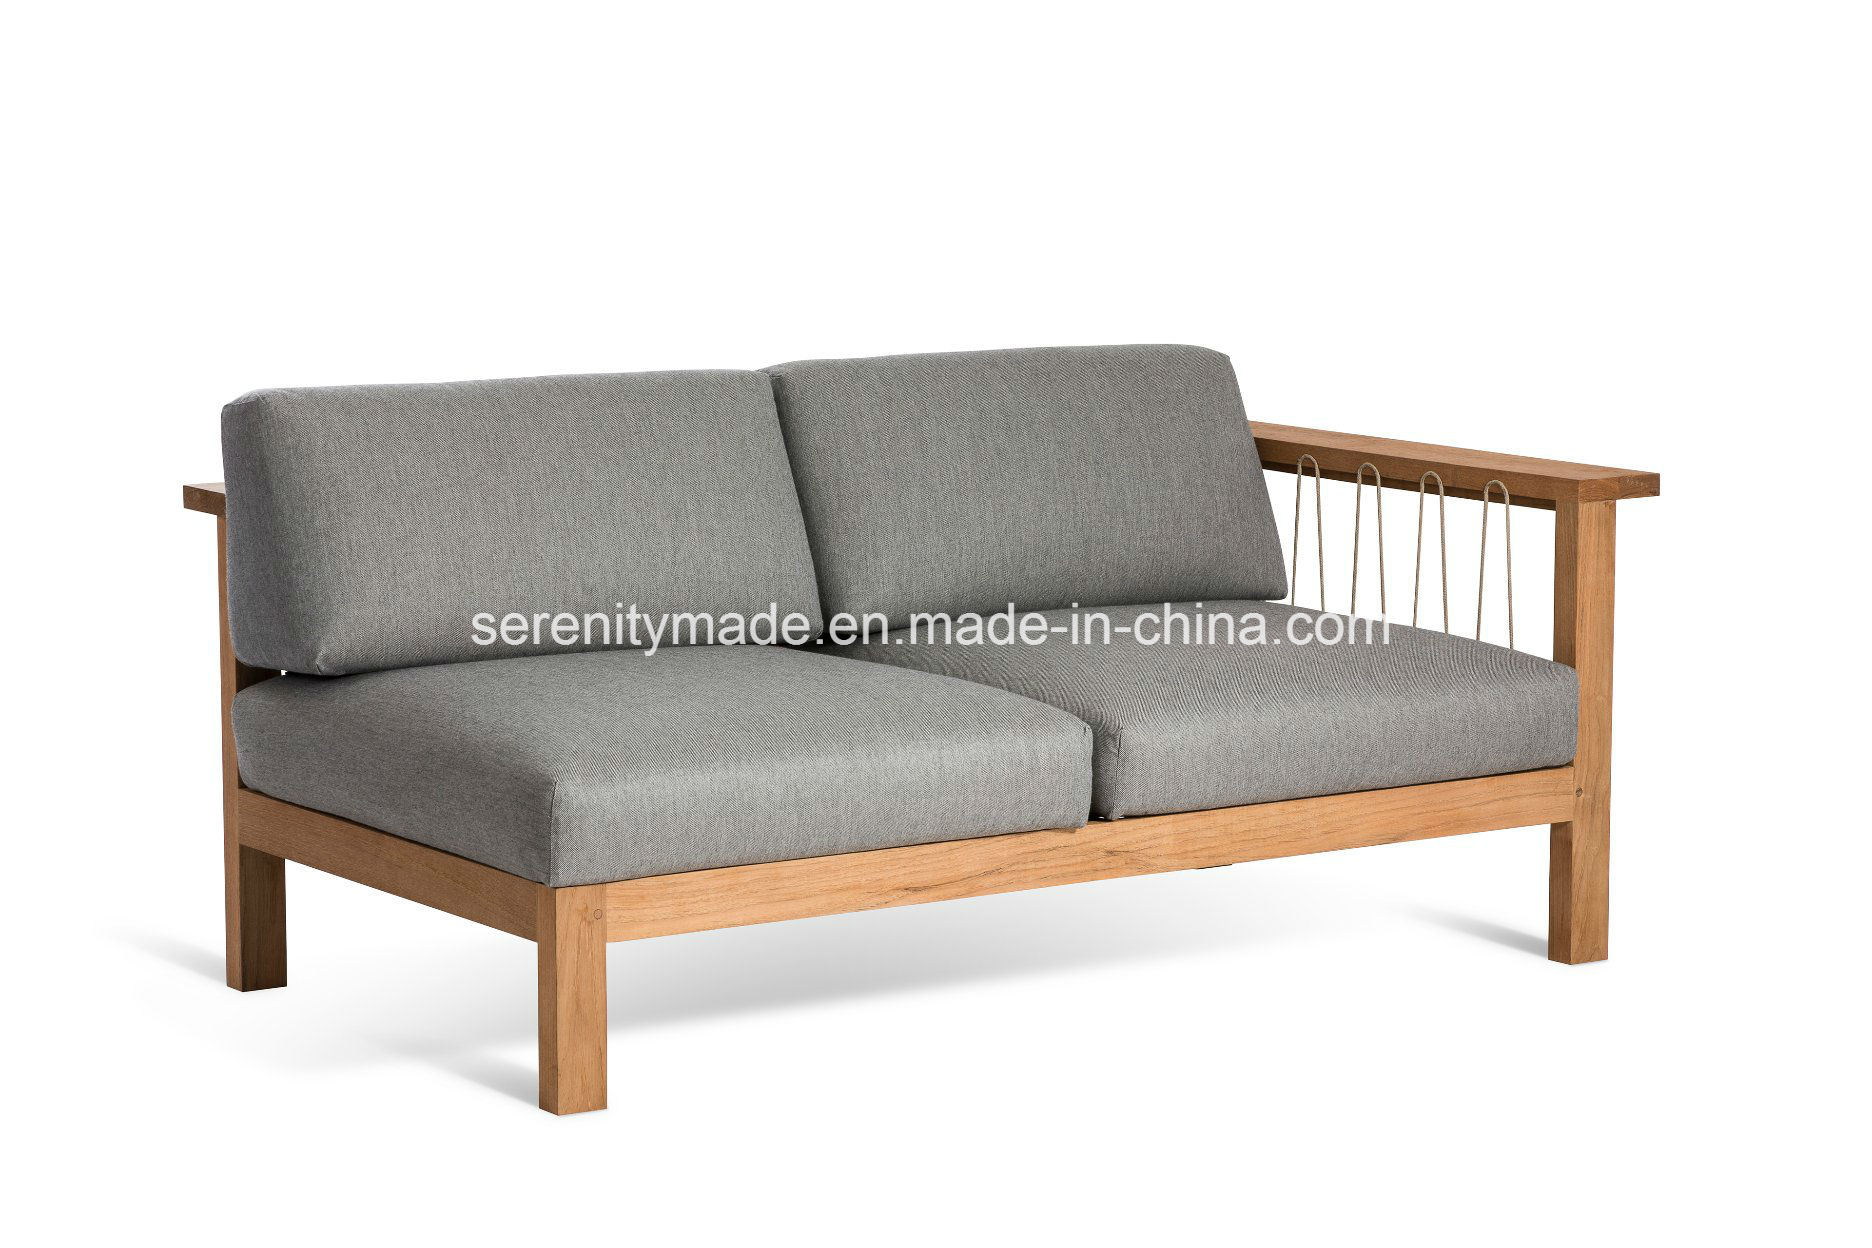 Hot Item American Style Two Seater Leisure Wooden Frame Fabric Upholstered Corner Sofa